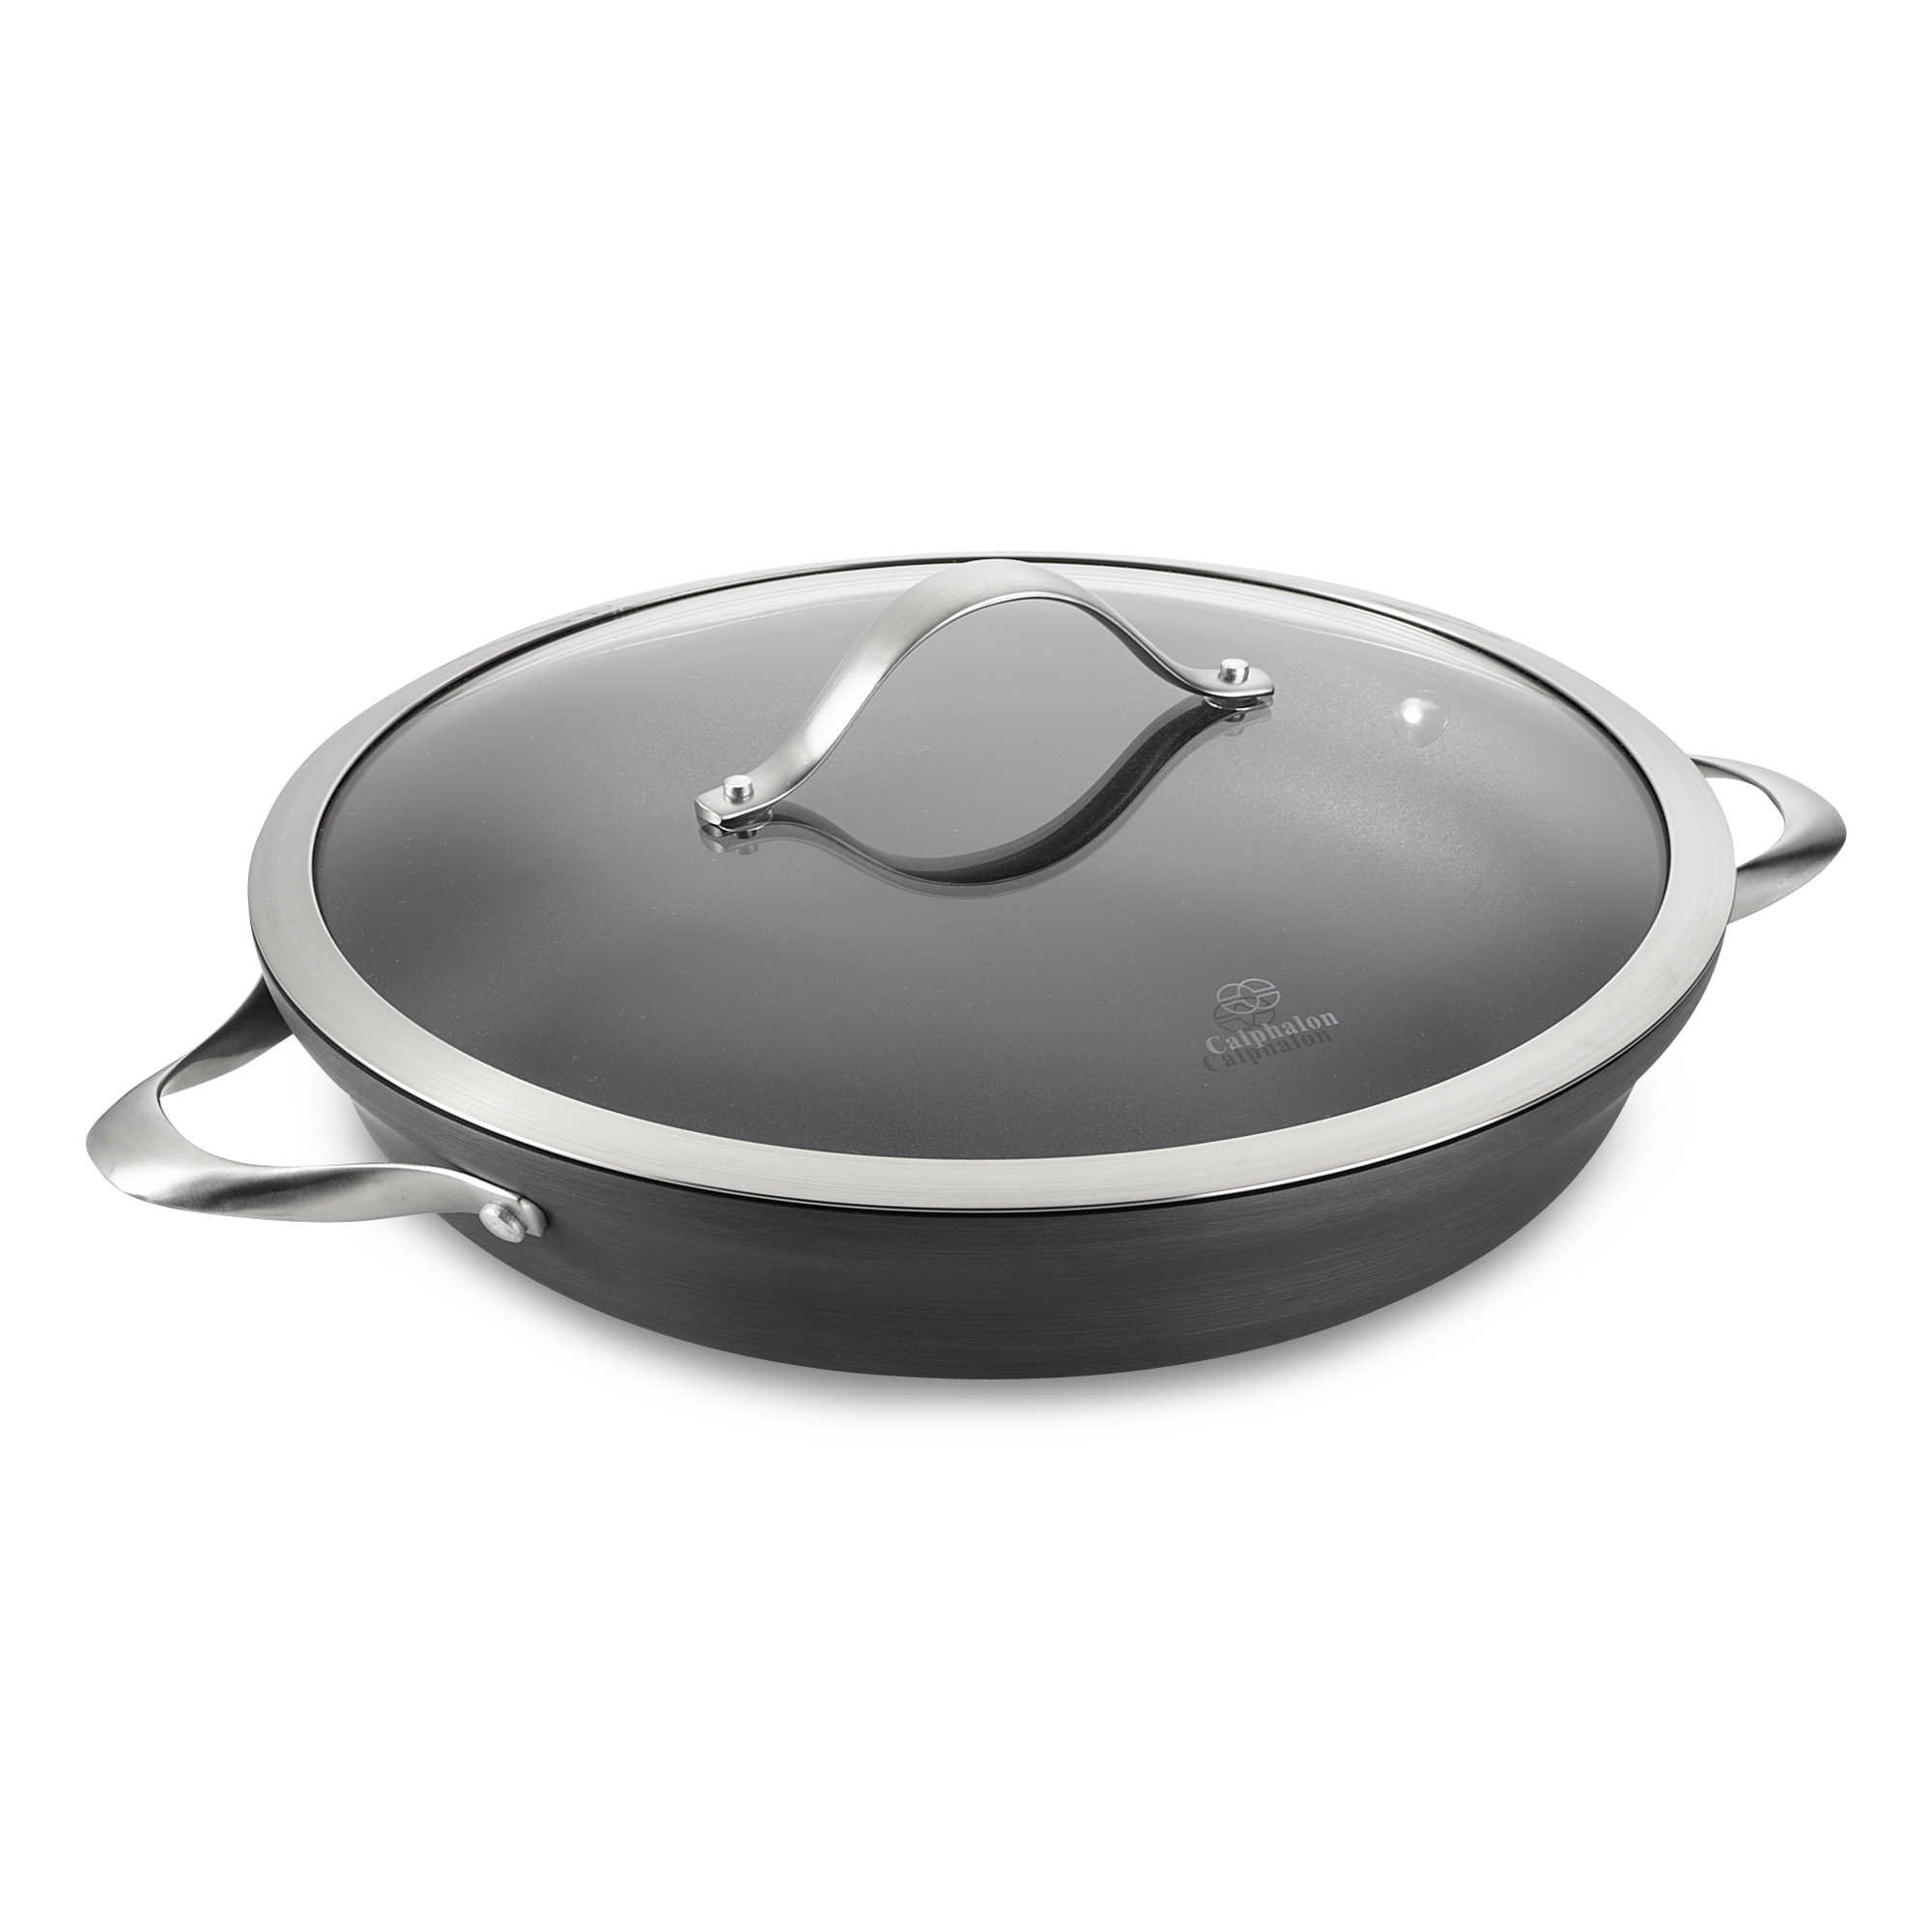 Calphalon® Contemporary Nonstick 3.6-Quart Covered Everyday Pan by Calphalon